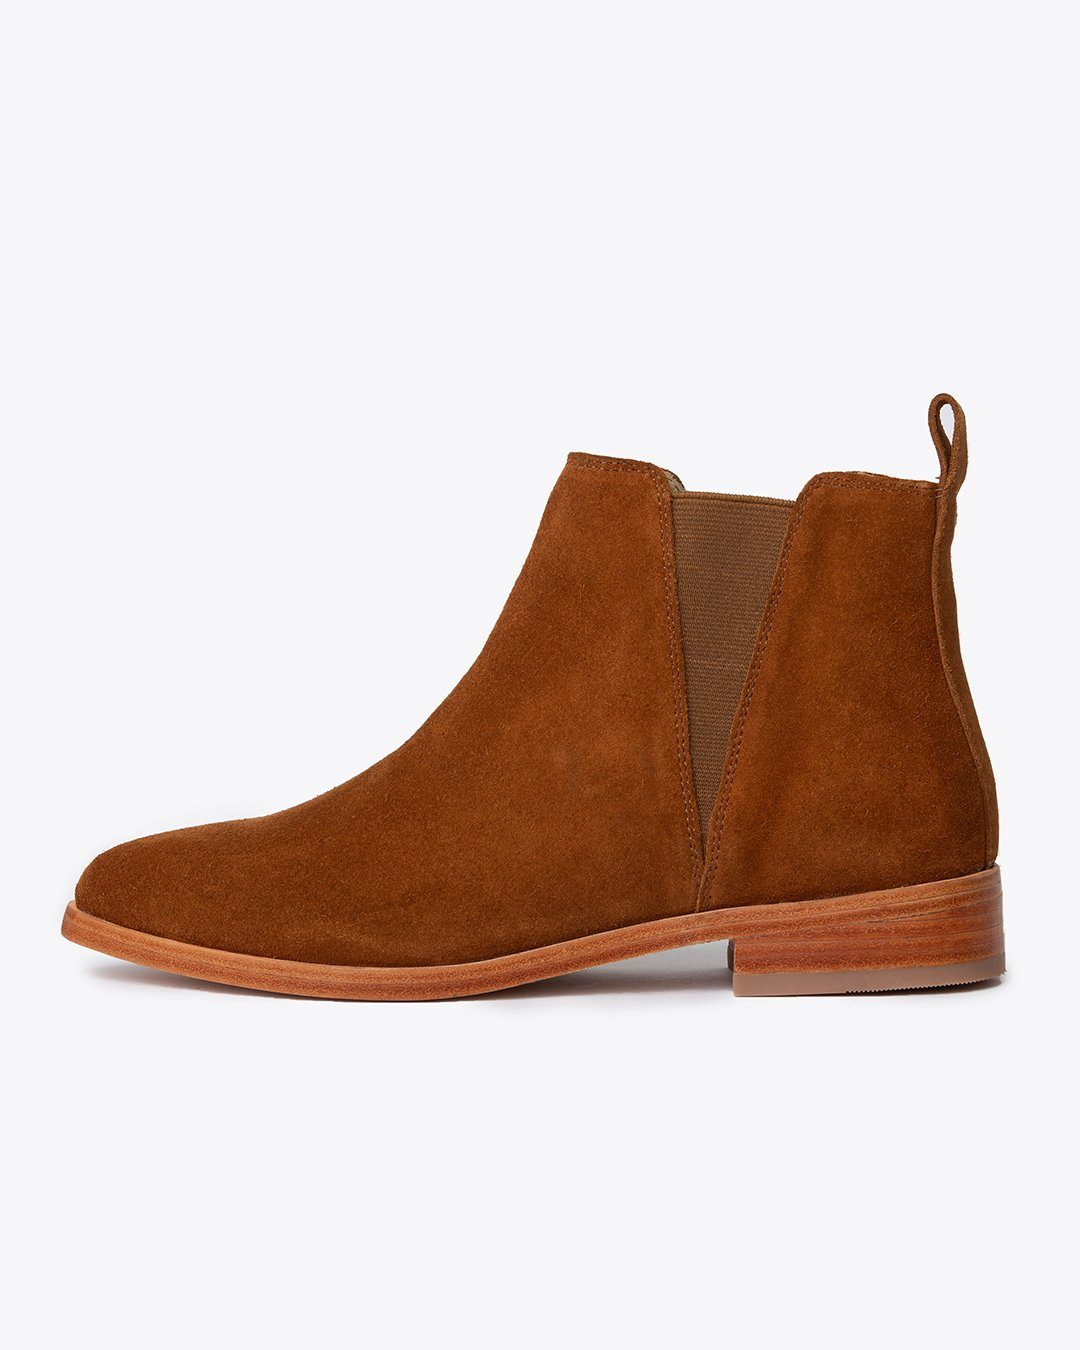 Chelsea Boot Nutmeg Women's Leather Boot Nisolo